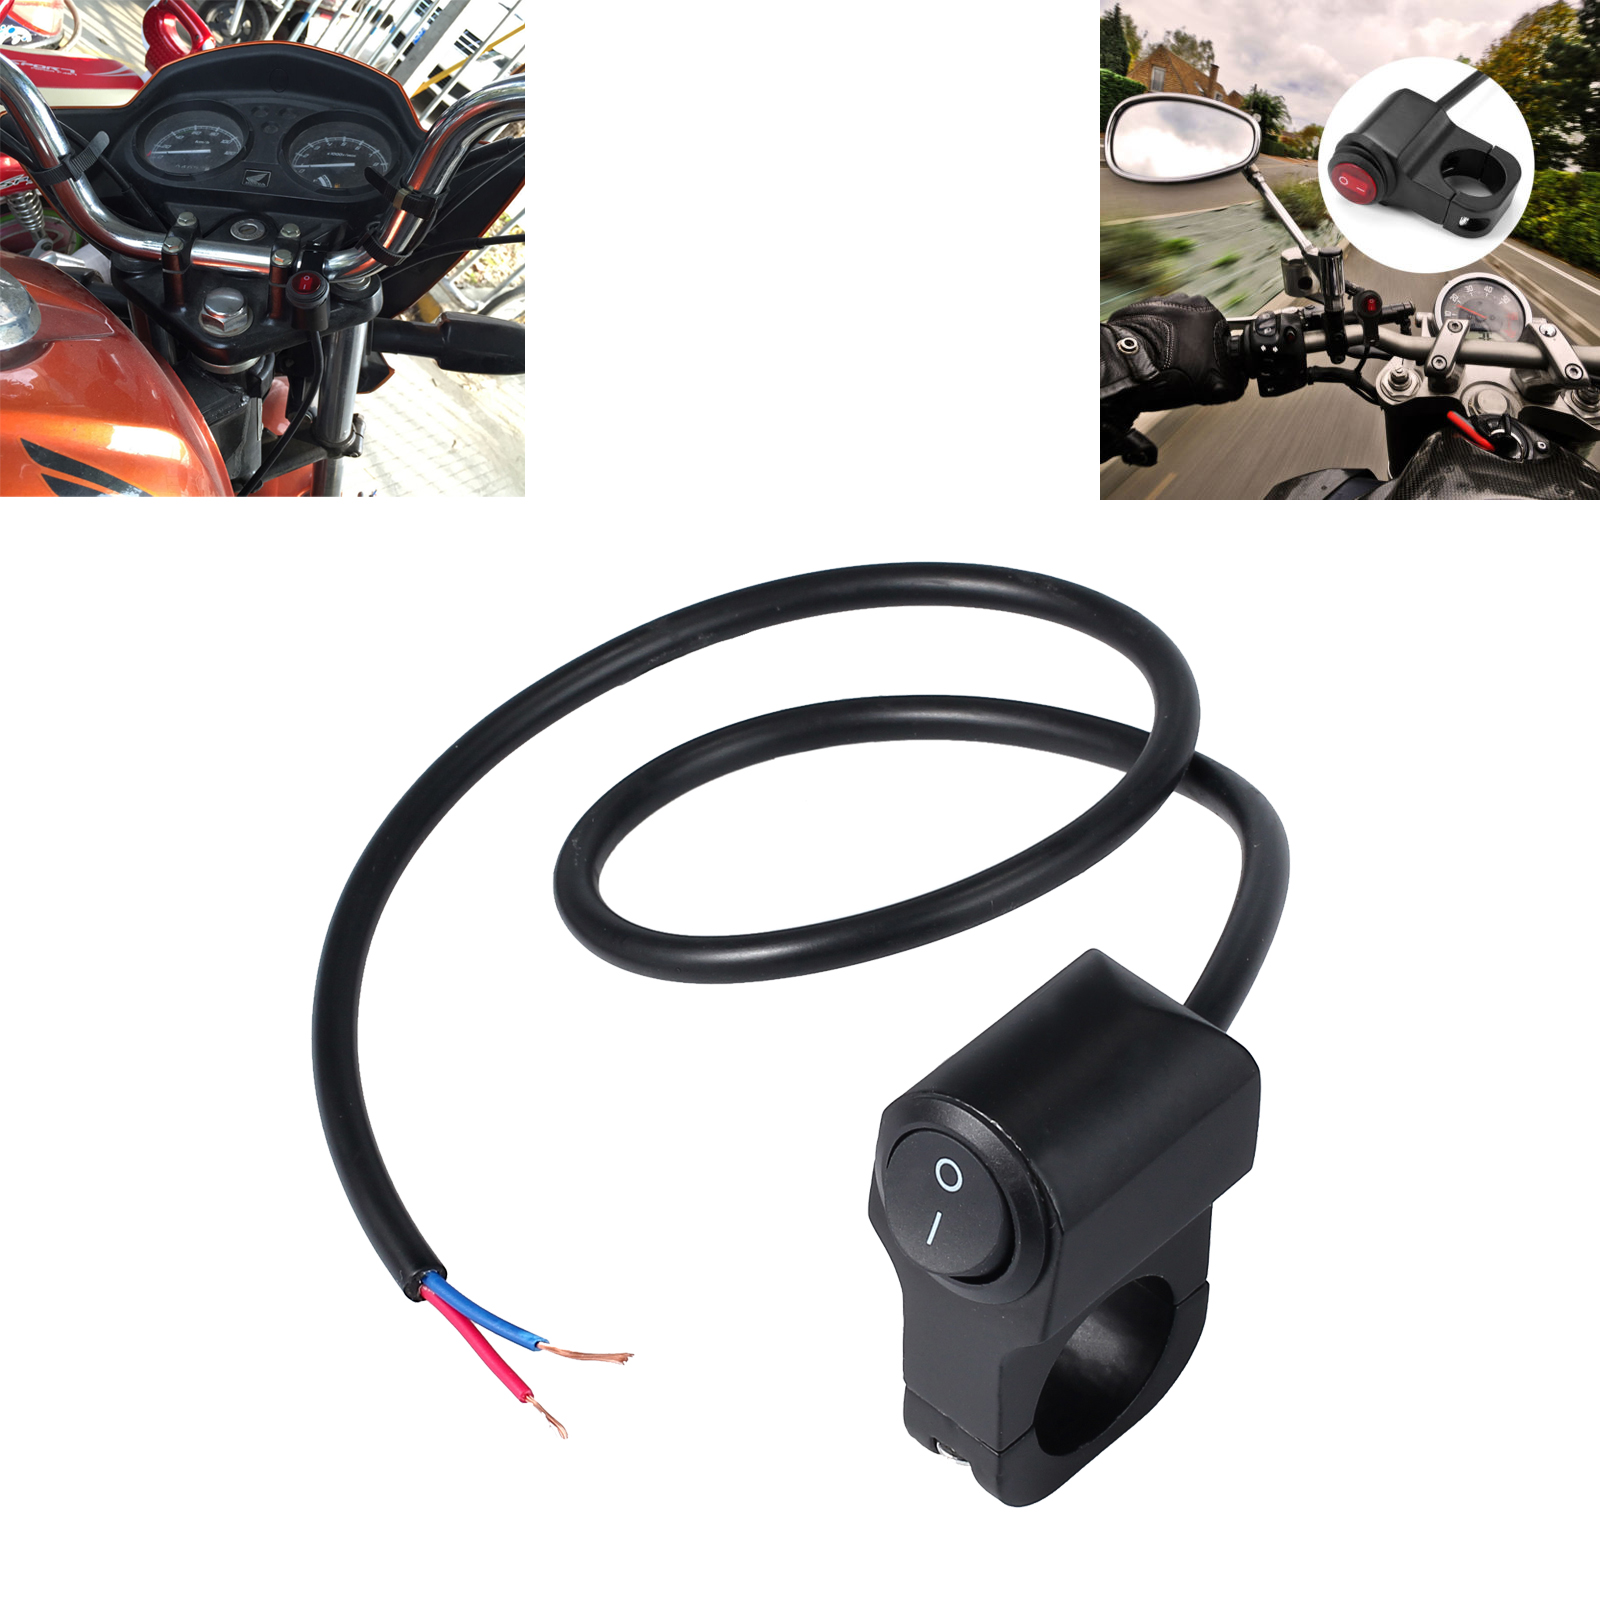 Motorcycle Light Switch,12V 16A Motorcycle ATV Waterproof Handlebar Headlight Switch Fog Spot light LED On Off Switch